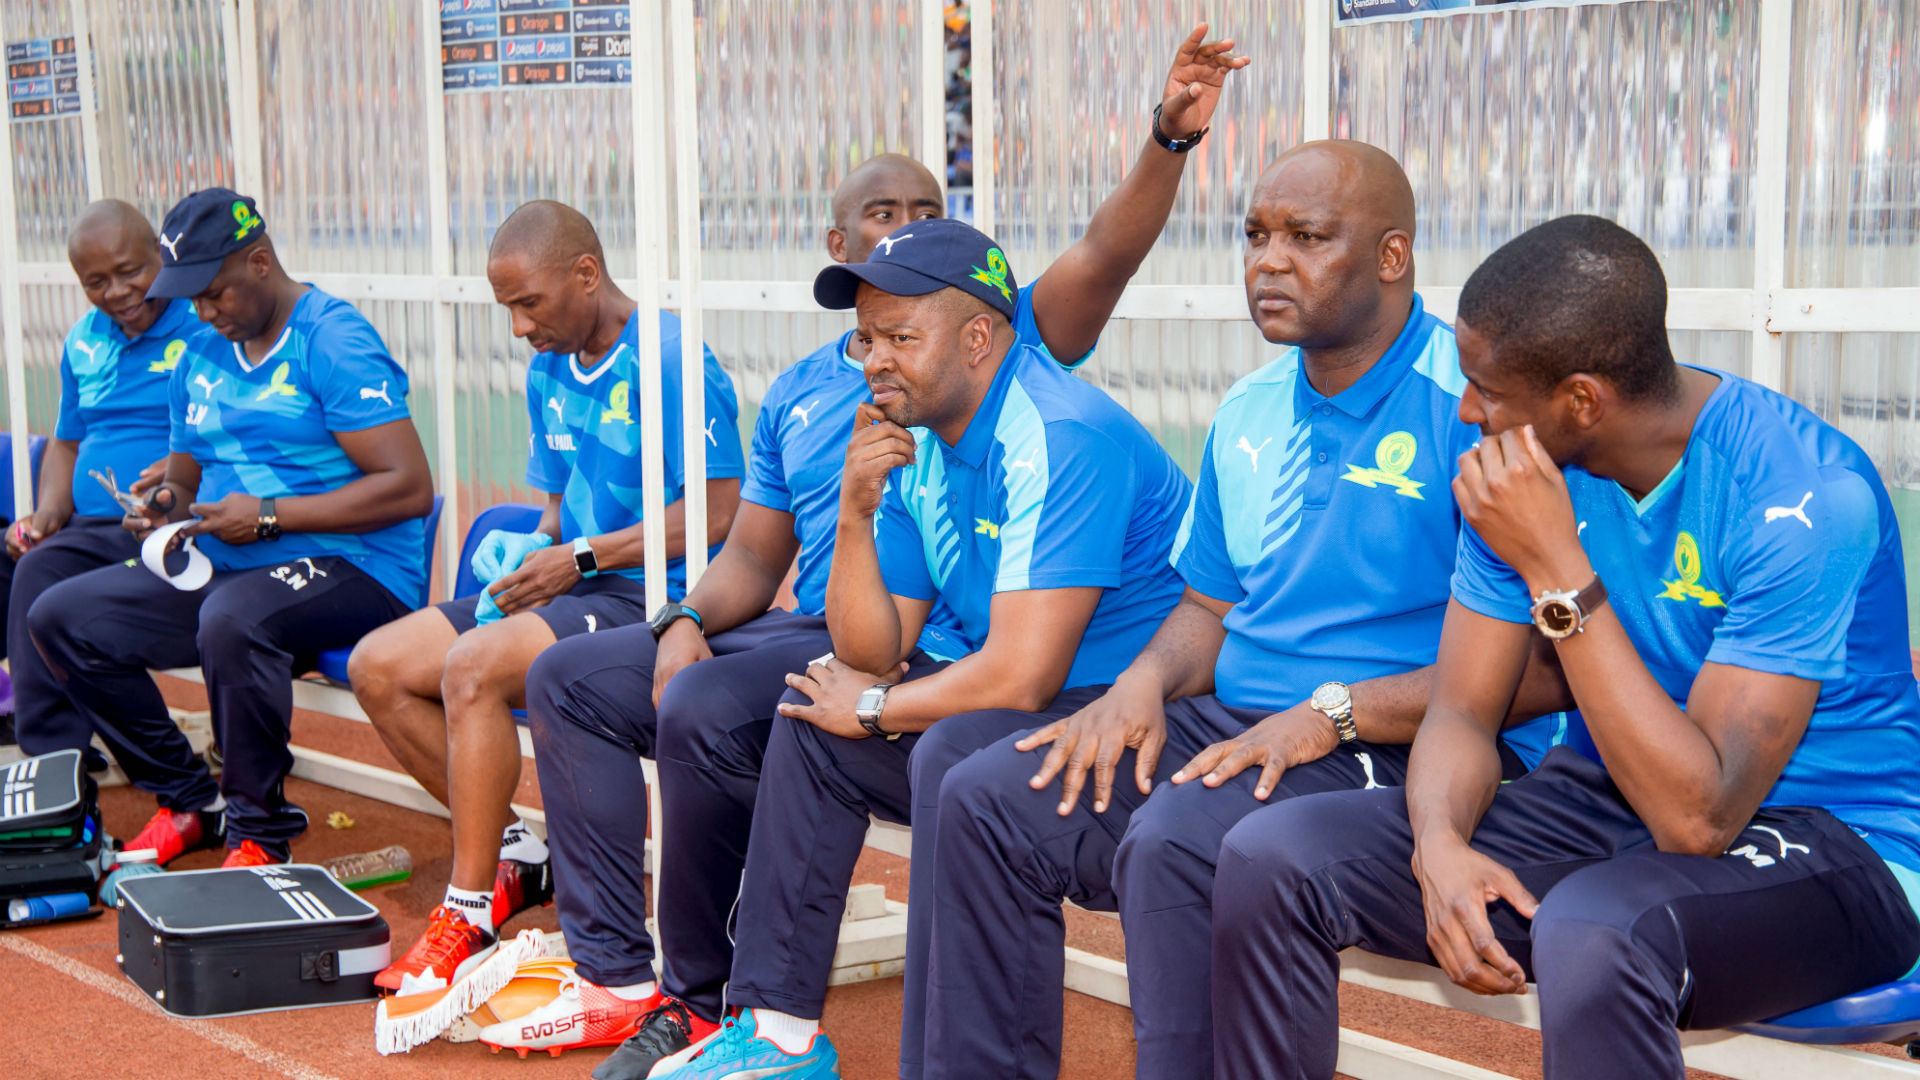 Mashego urges Mamelodi Sundowns to go for local coach as replacement for Mosimane